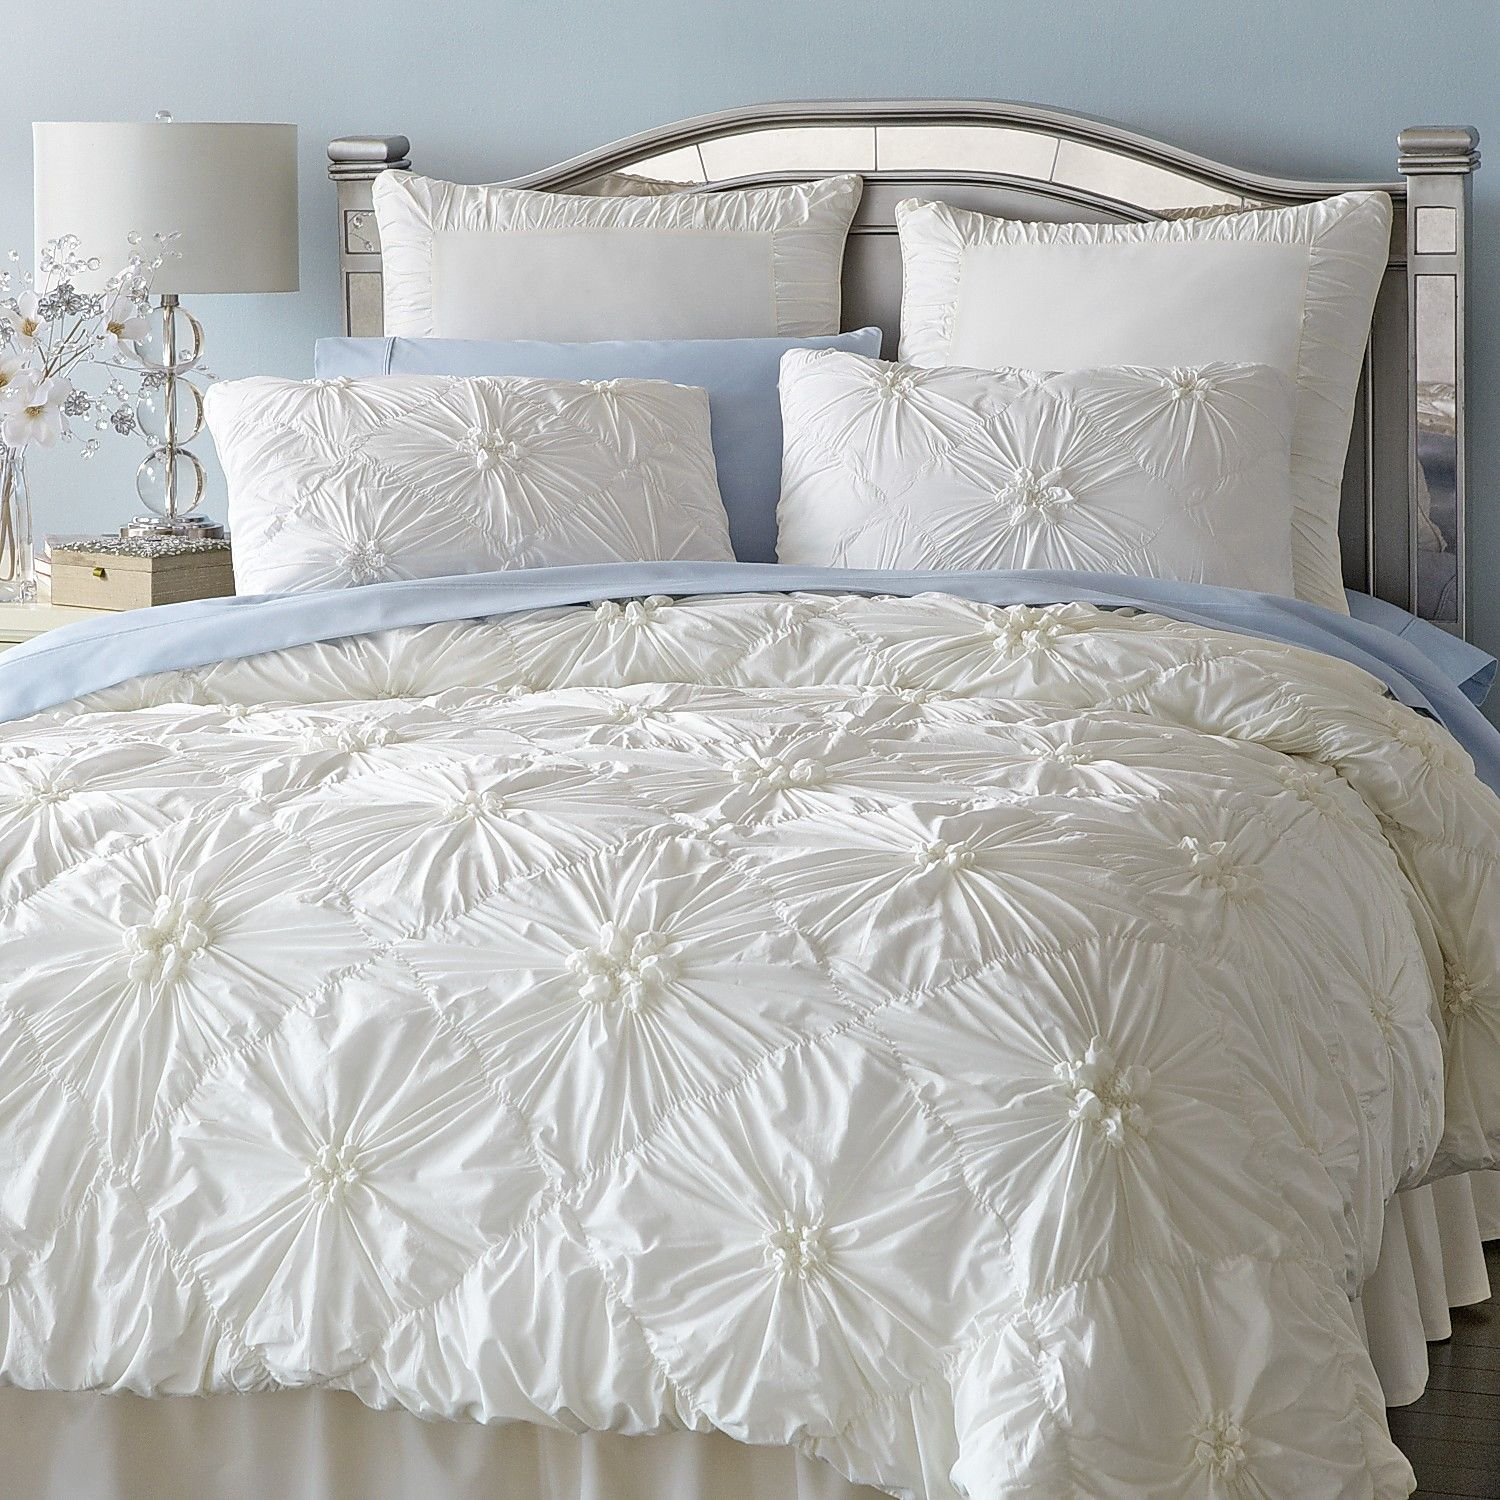 Duvet cover Linen white,linen bedding,natural organic duvet cover,flax bedding,linen duvet cover queen,linen duvet cover king ShopByElla. 5 out of 5 stars () $ Favorite Add to See similar items + More like this. More colors DUVET COVER quilt linen bedding linen duvet cover queen duvet cover king Queen duvet cover Full Twin tour de.